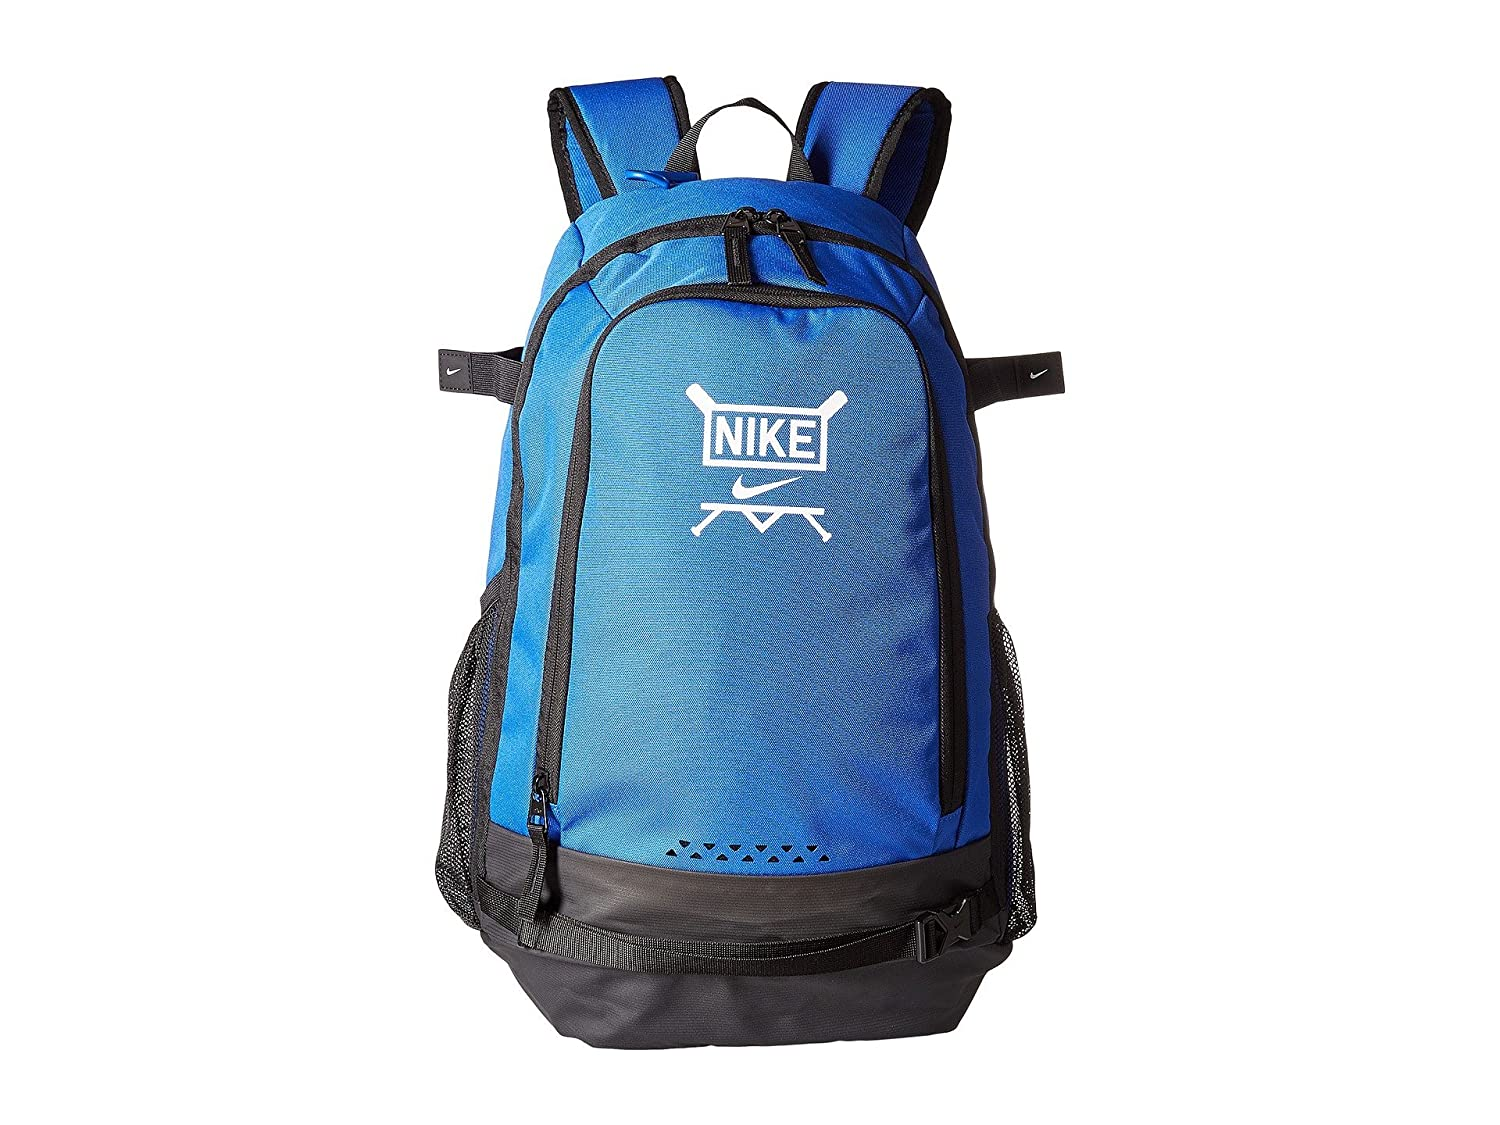 [NIKE(ナイキ)] リュックバックパック Vapor Clutch Bat Baseball Backpack [並行輸入品] B07L6VNRXW Game Royal/Black/White One Size